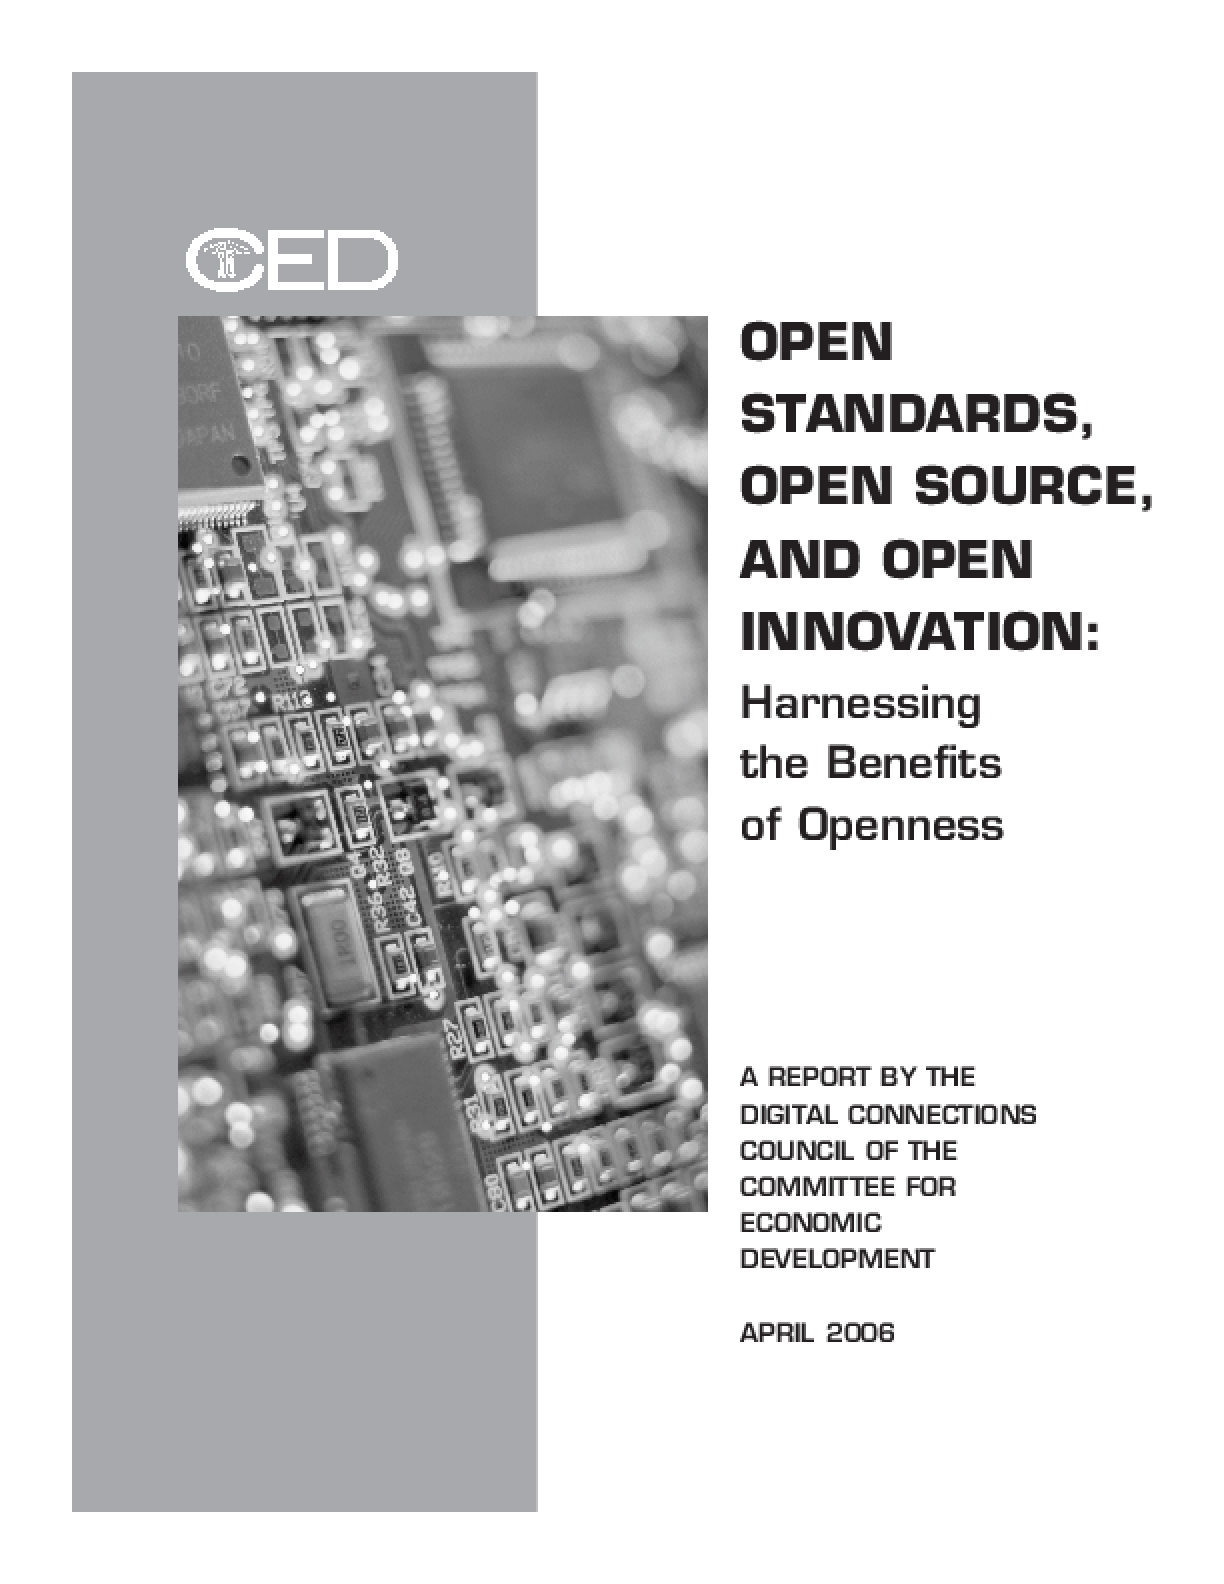 Open Standards, Open Source, And Open Innovation: Harnessing the Benefits of Openness